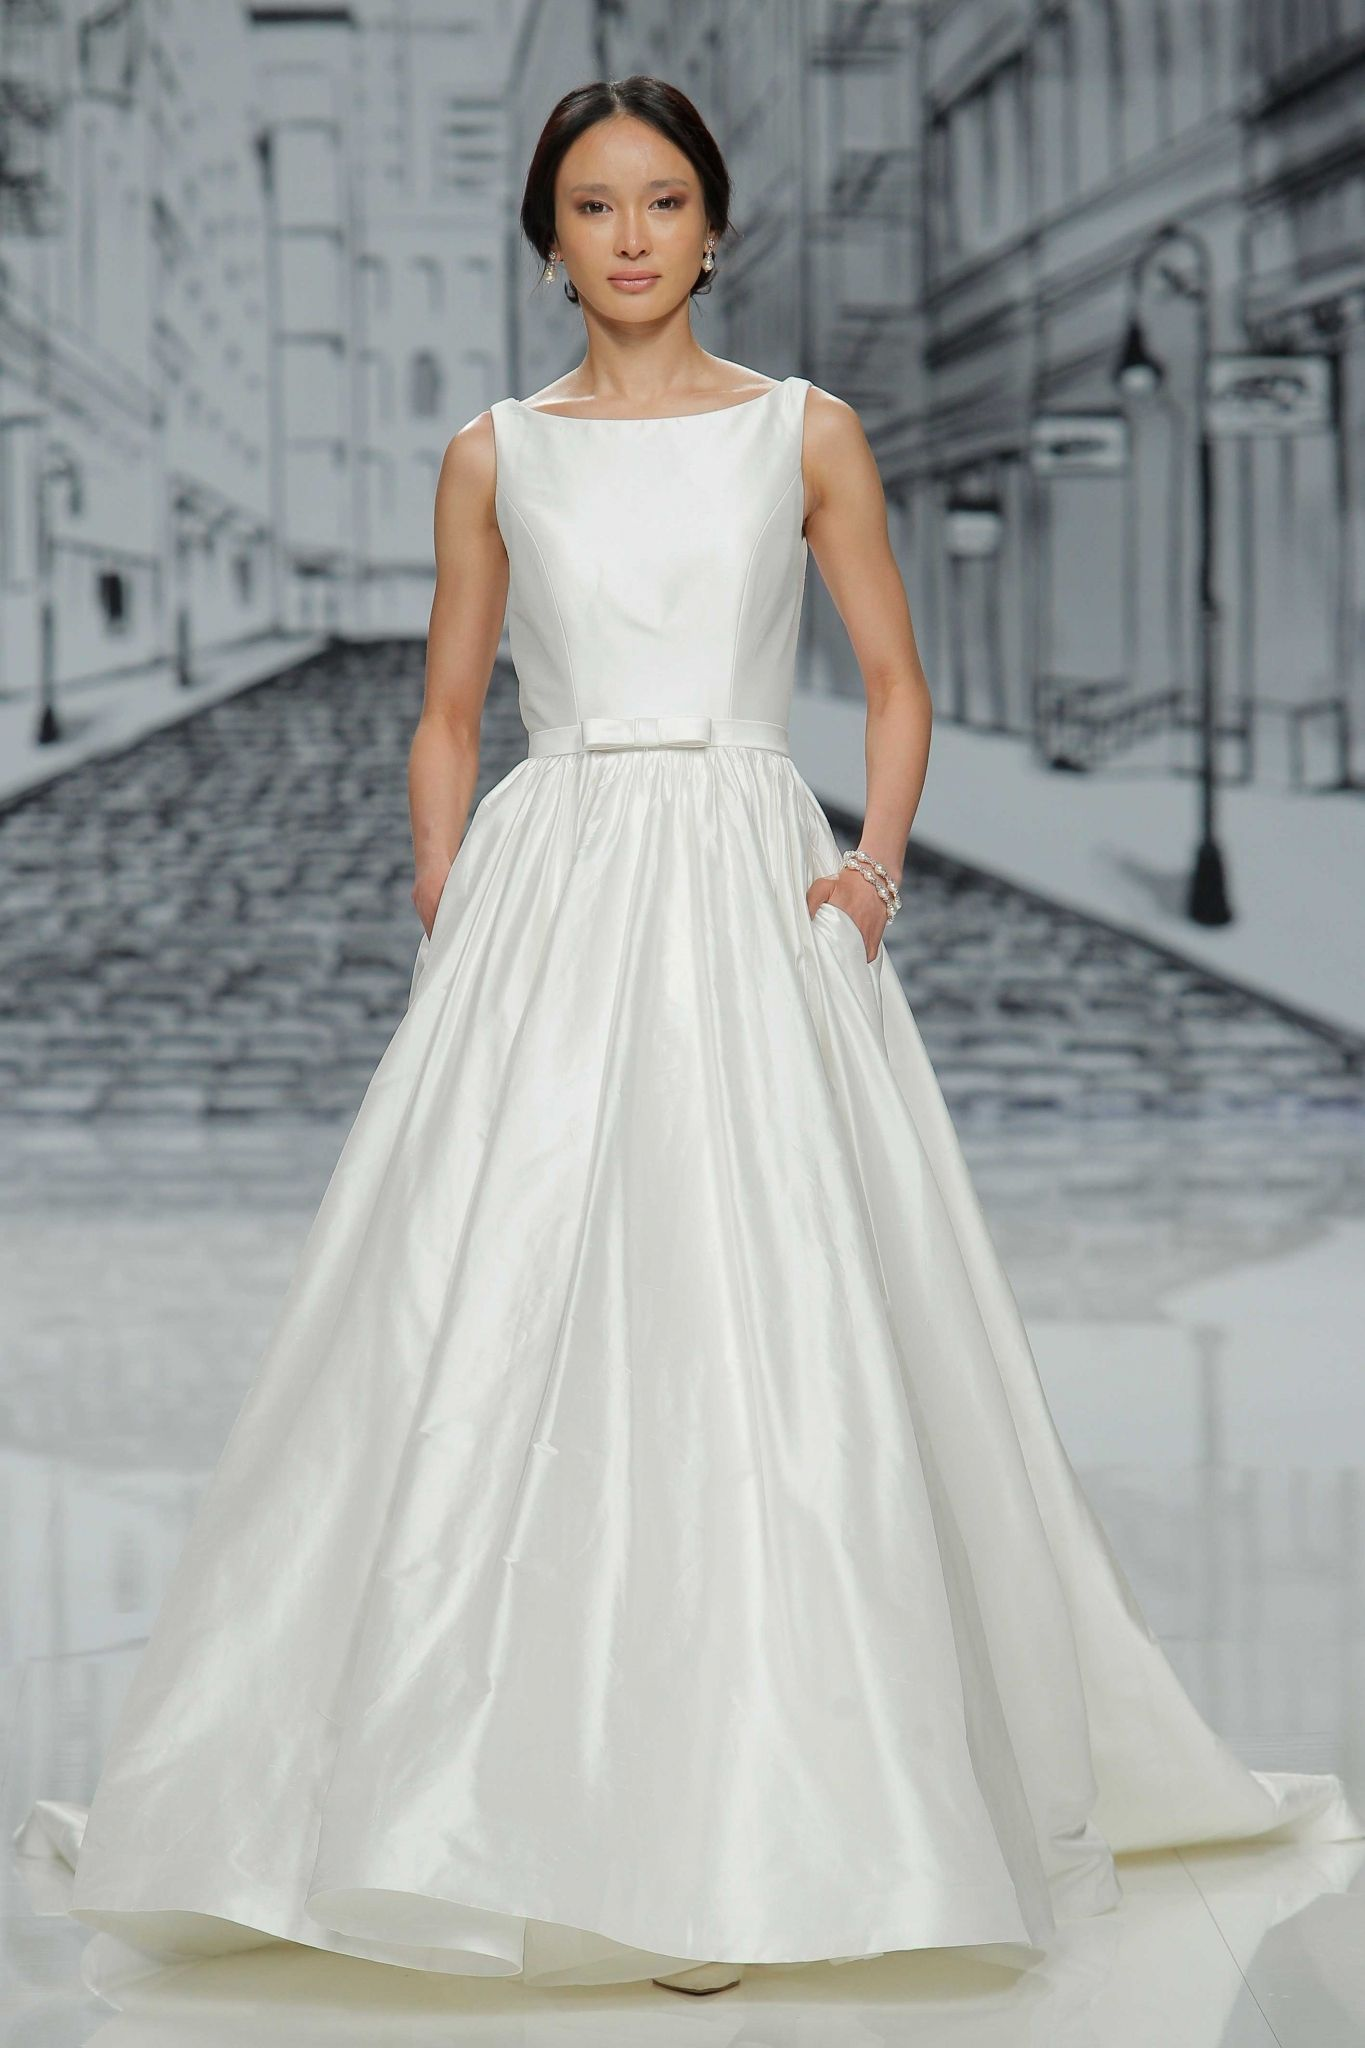 Simple wedding dress styles plus size dresses for wedding guests